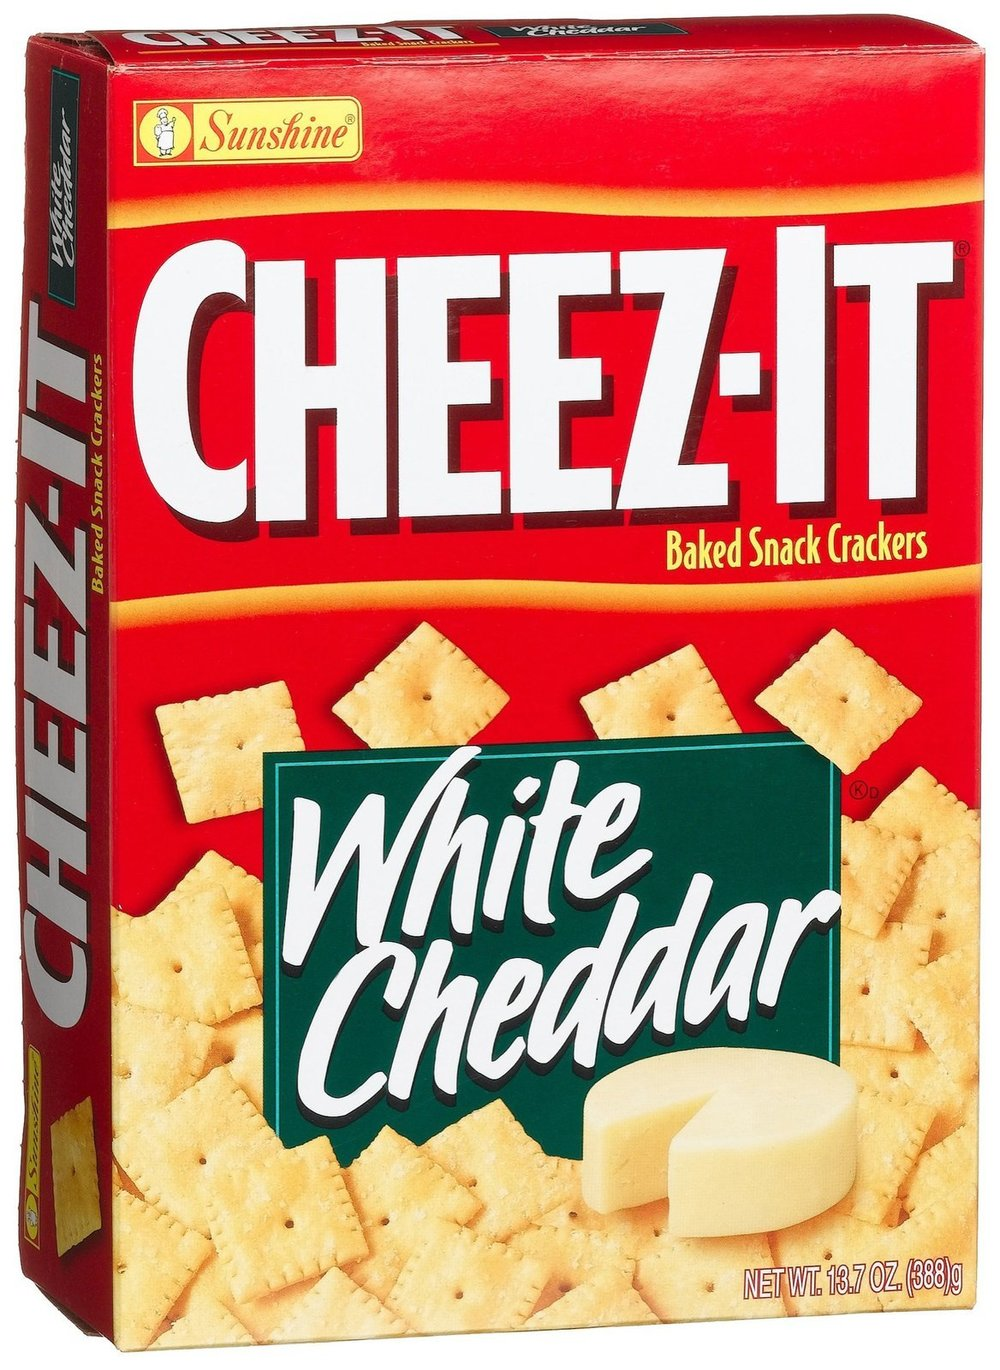 You need that something salty and crunchy, so white cheddar cheez its of course!